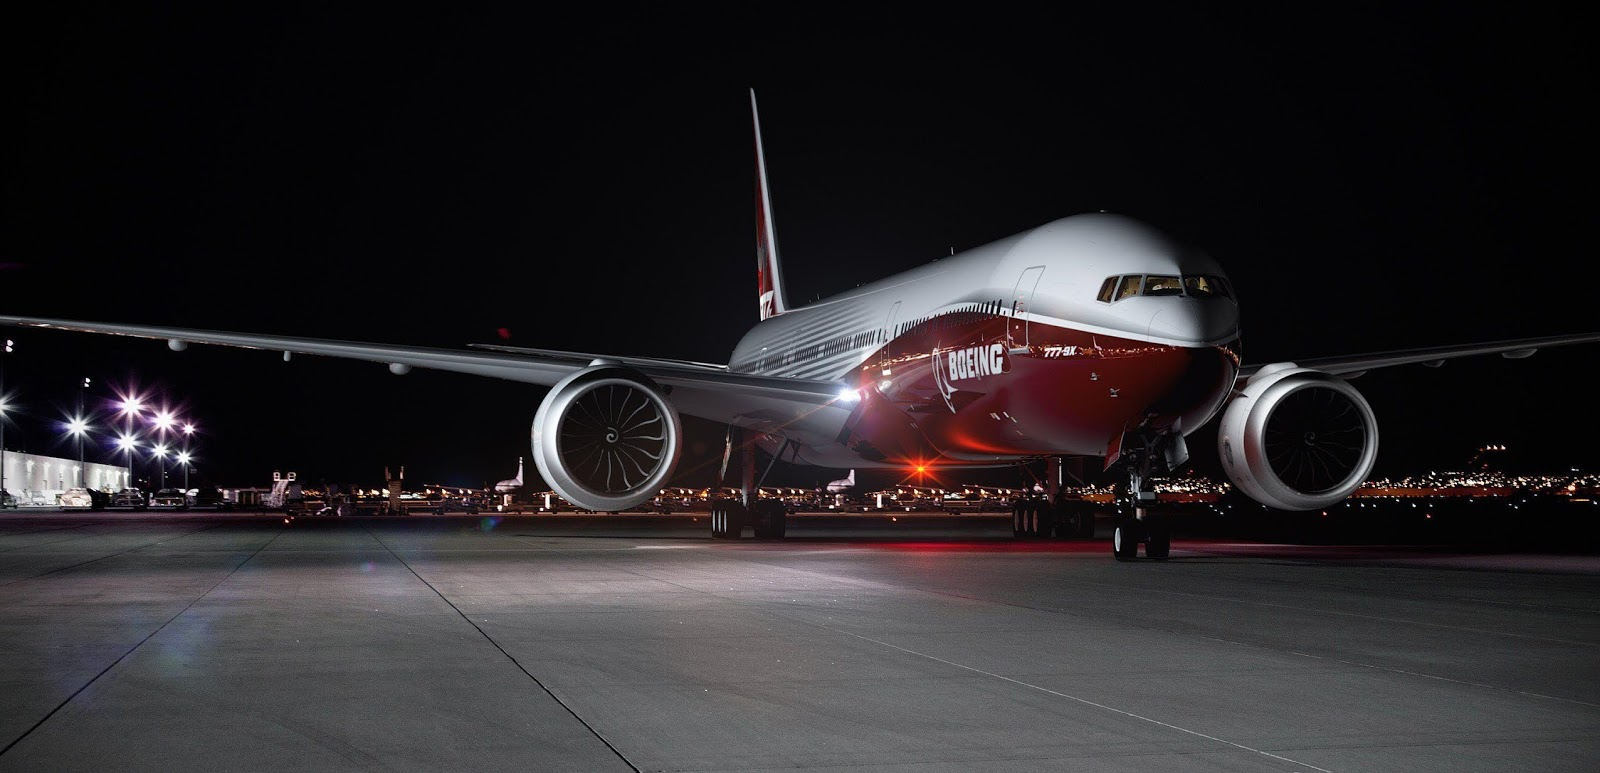 777x wallpapers boeing